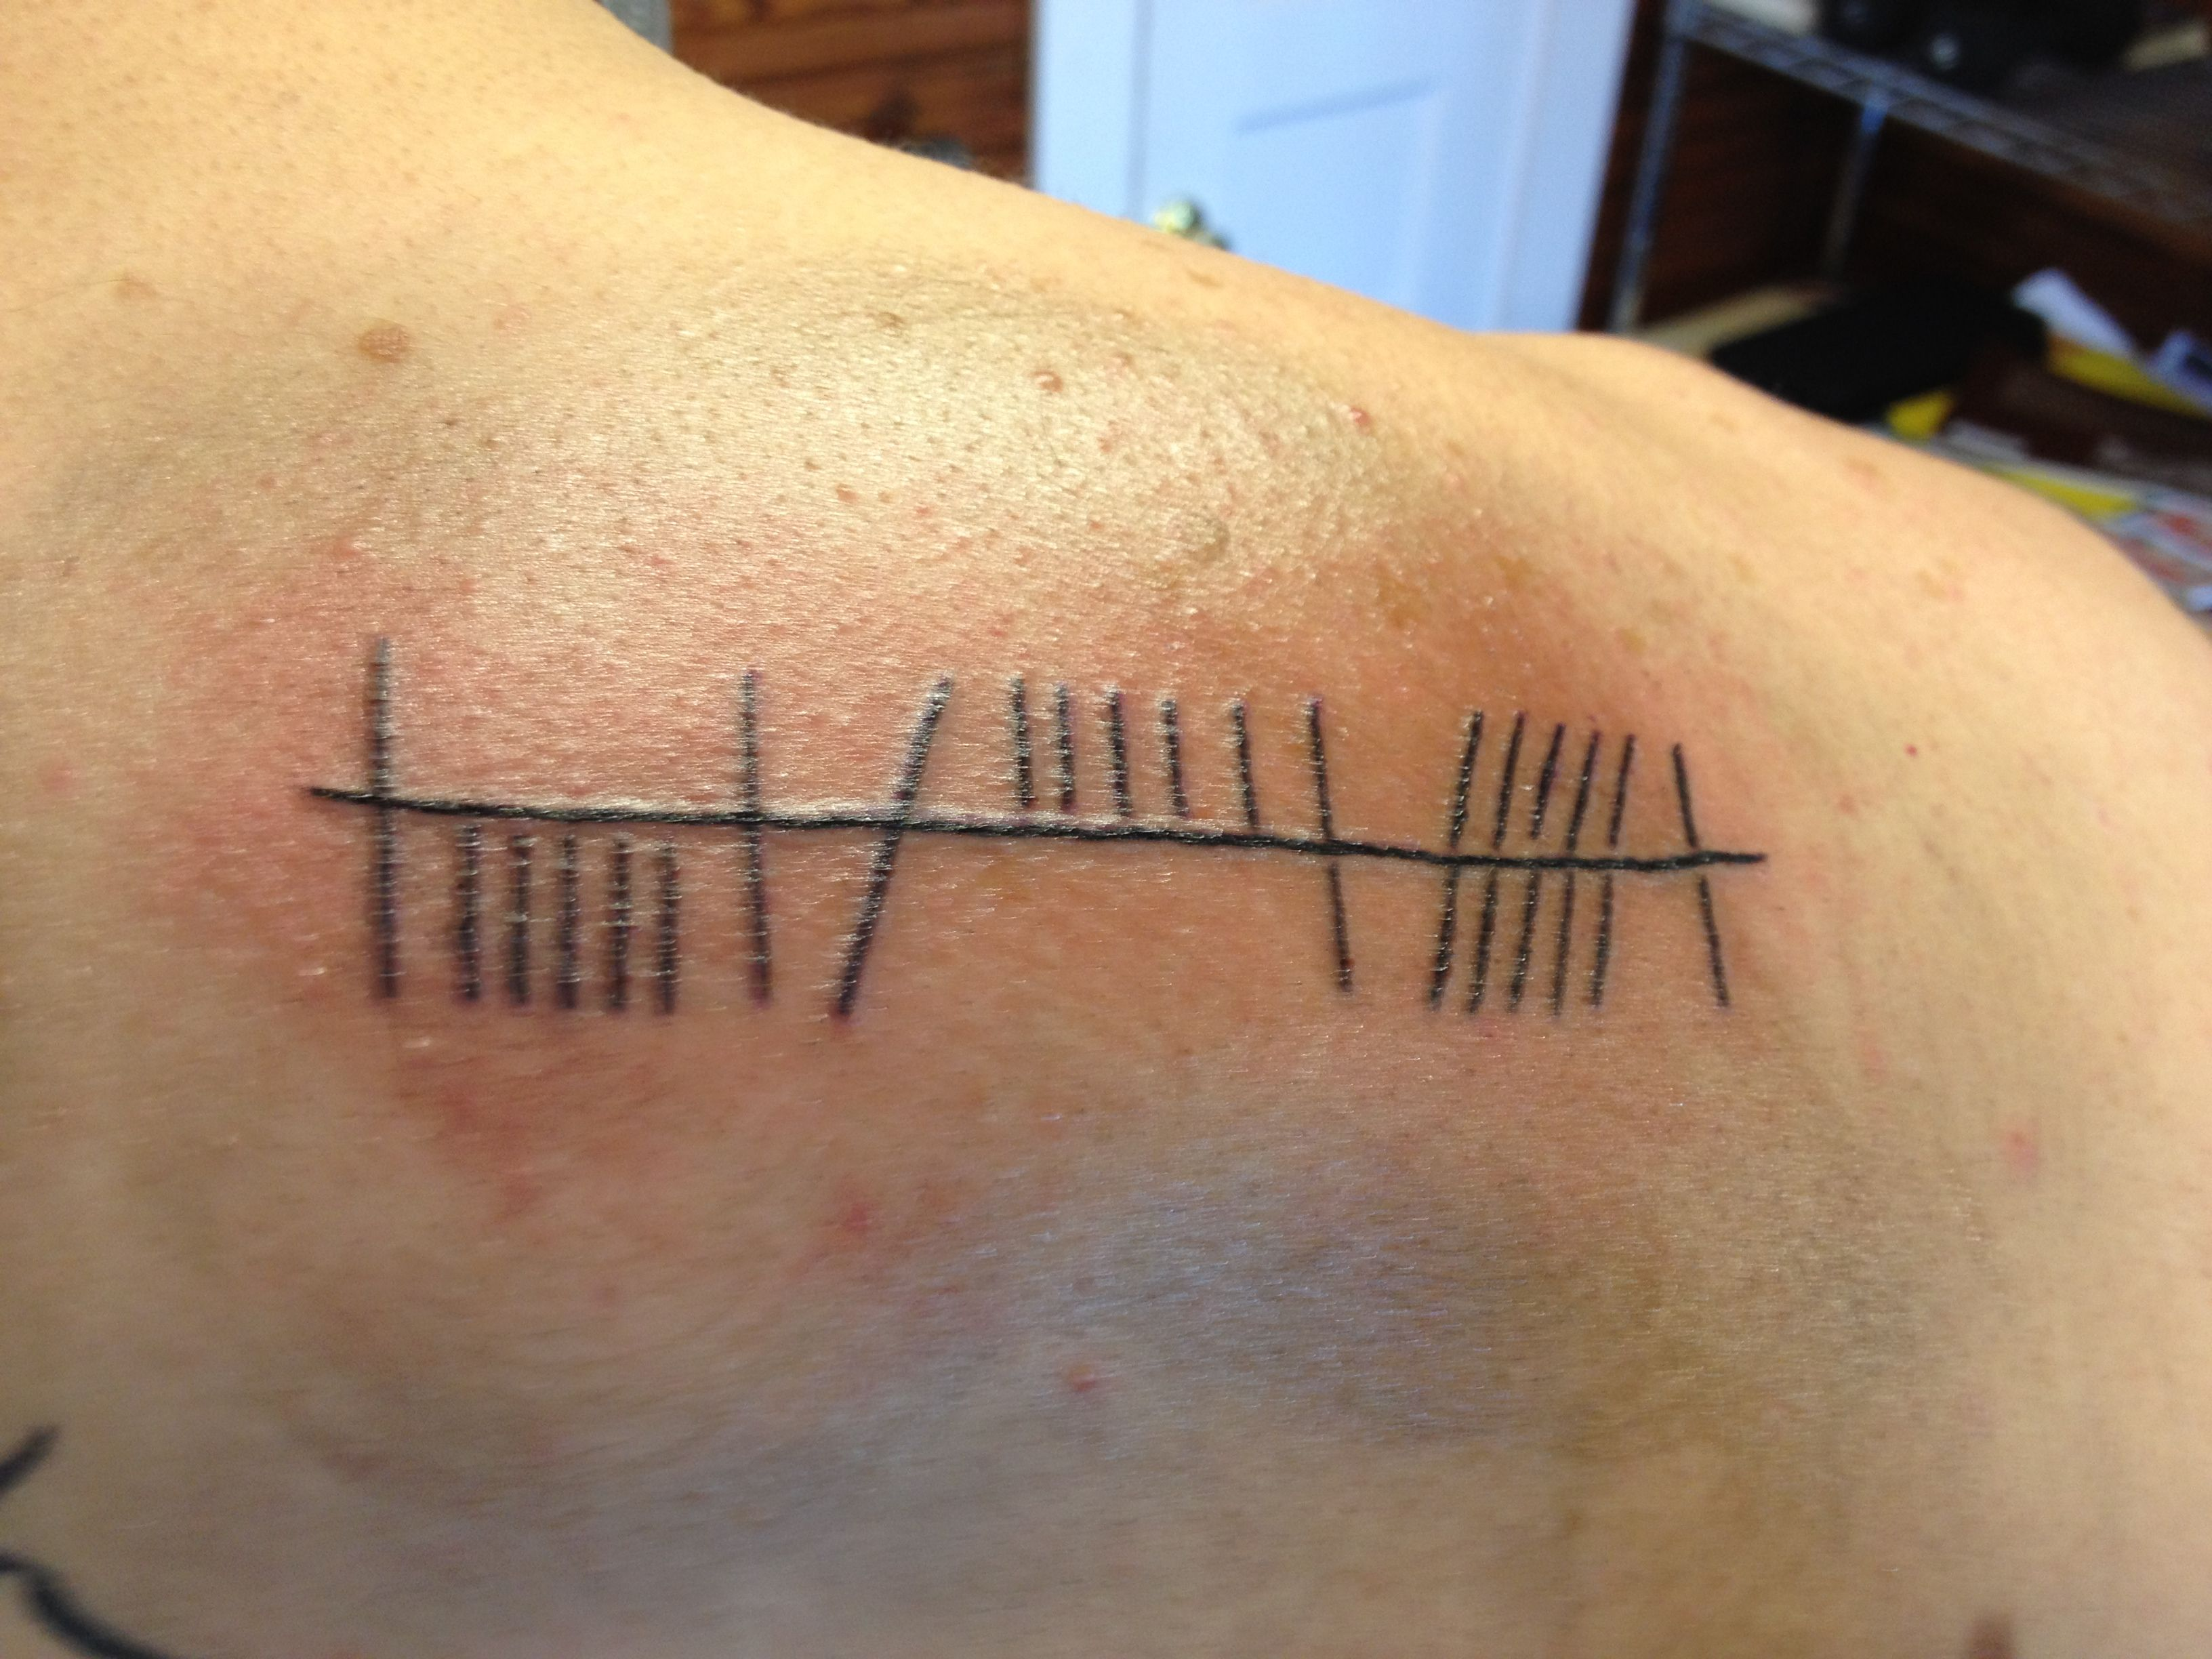 Ogham Gaelic tattoo this is kind of how I want mine, but I